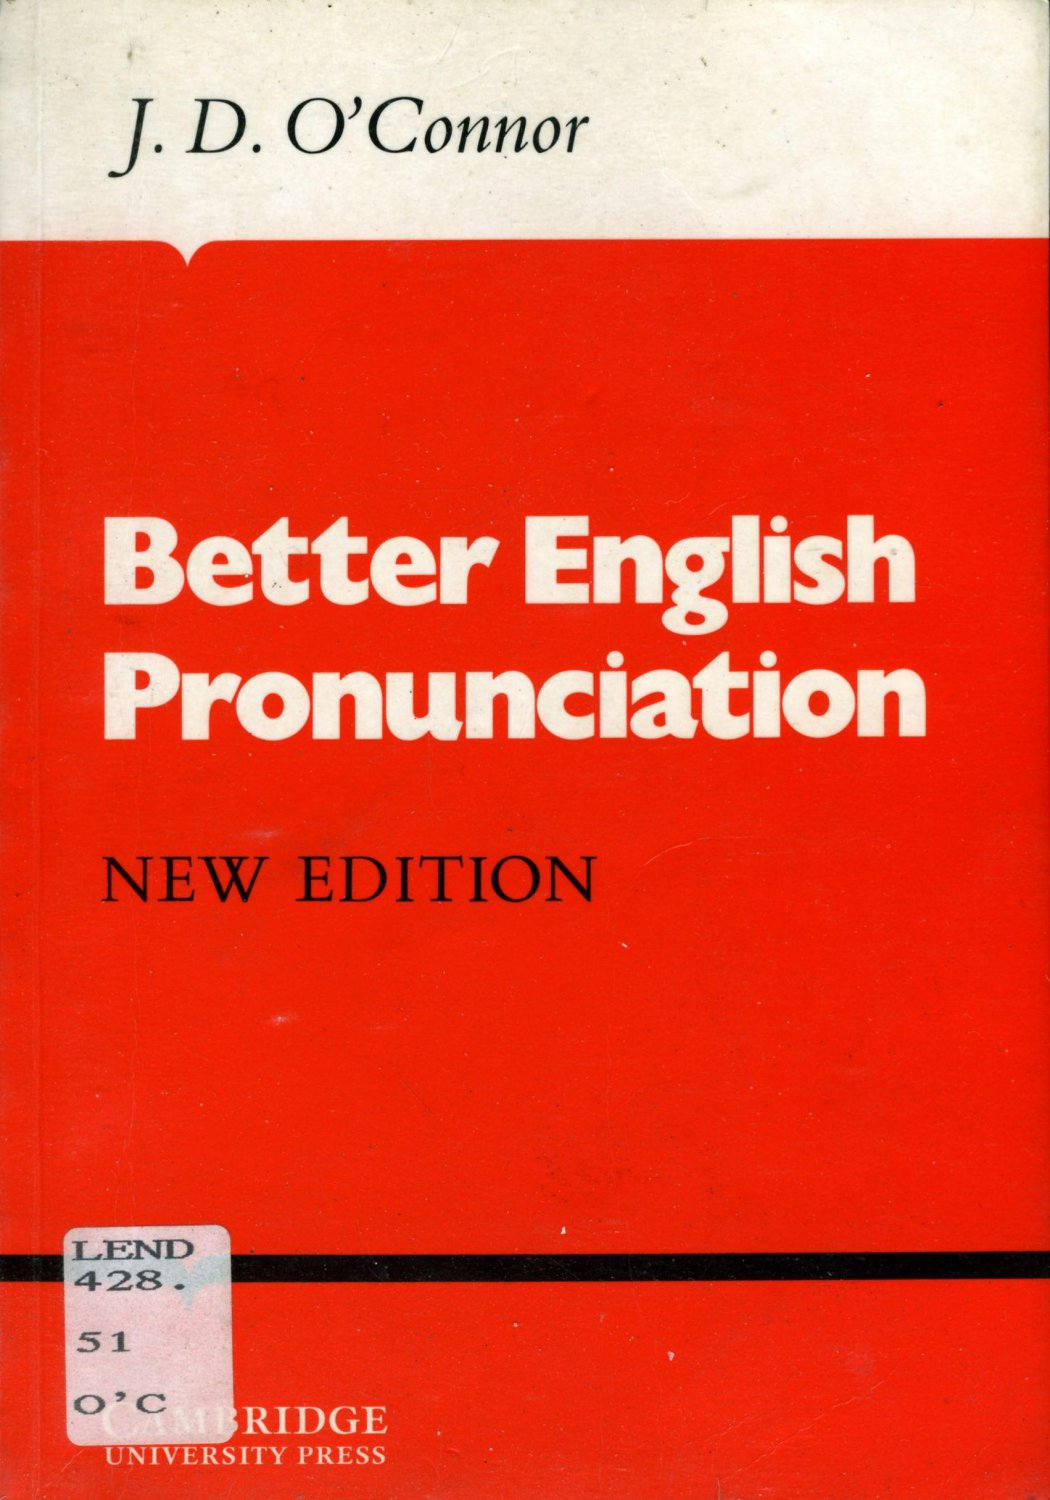 BETTER ENGLISH PRONUNCIATION